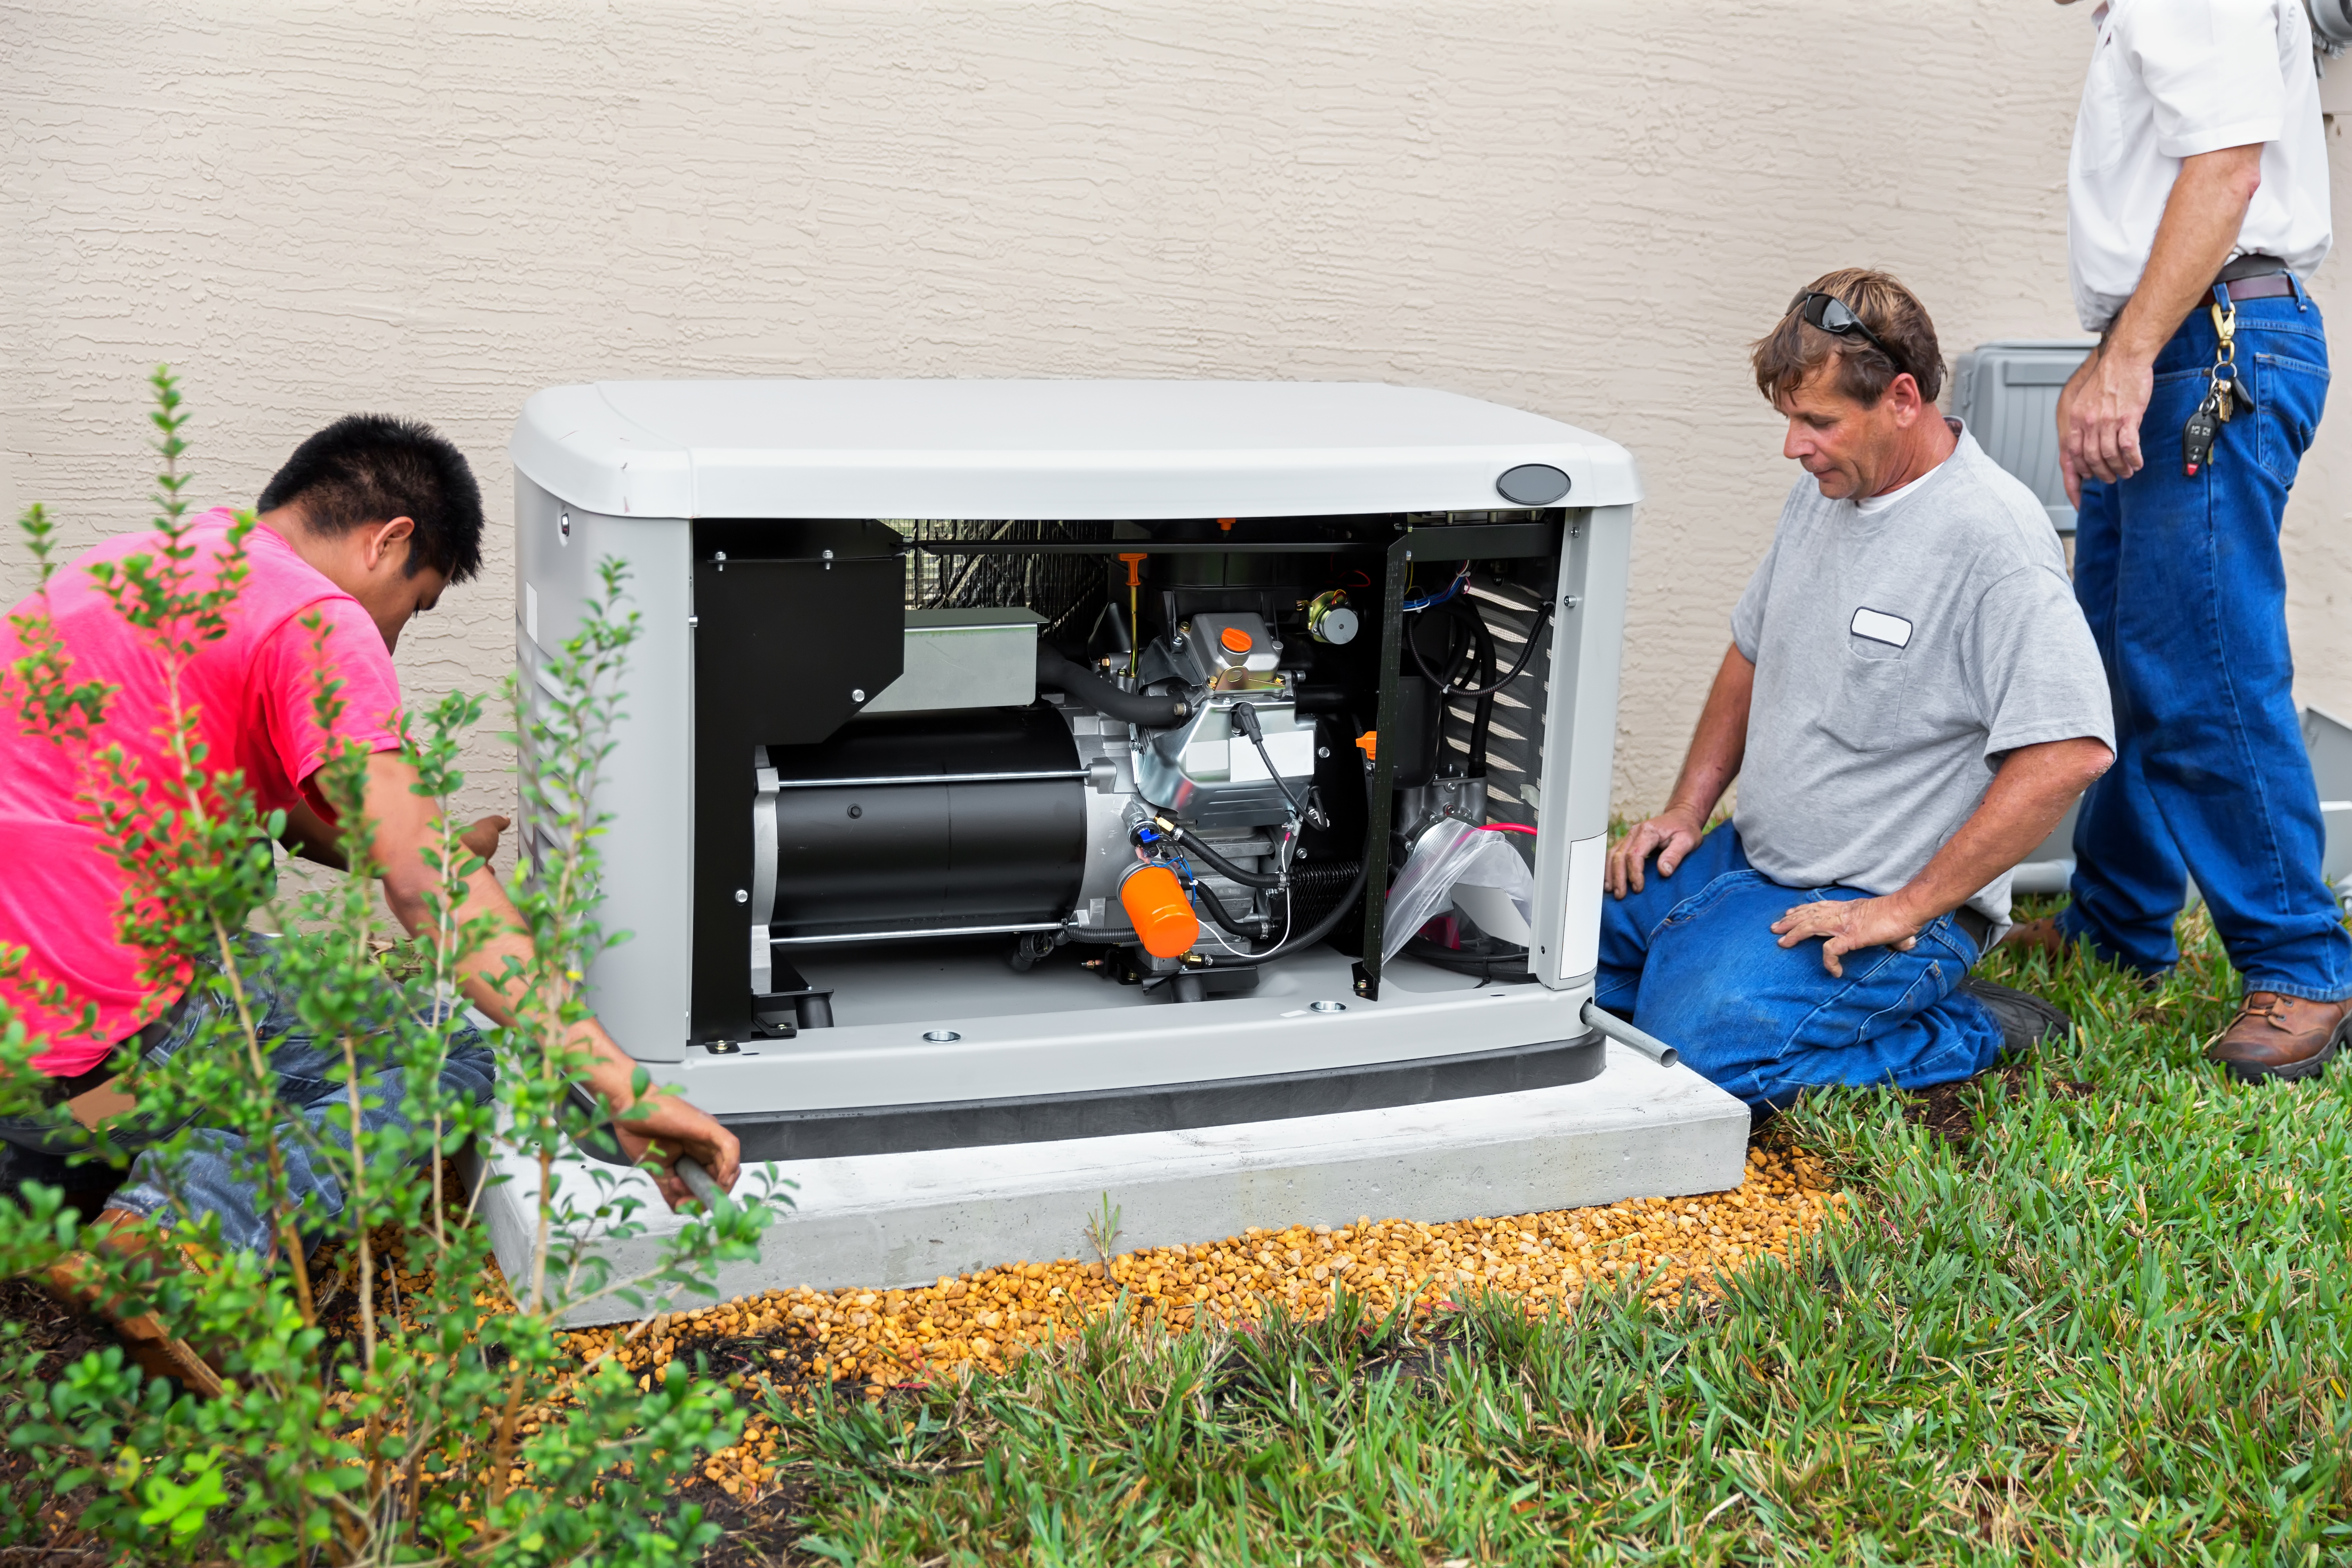 How to Power a Refrigerator by Generator | Home Guides | SF Gate